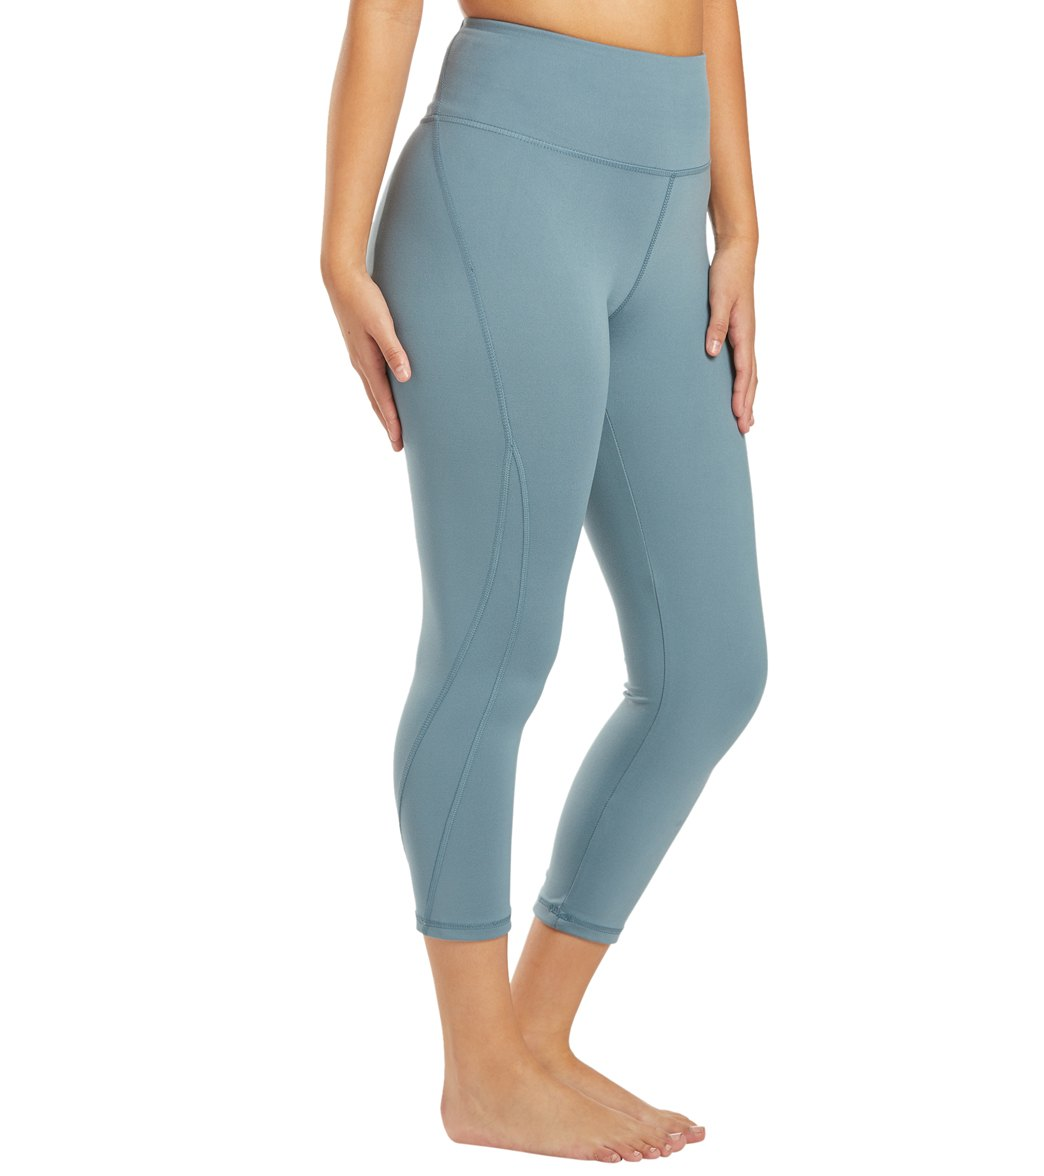 Balance Collection Briar High Waisted Yoga Capri Pants - Goblin Blue Cotton